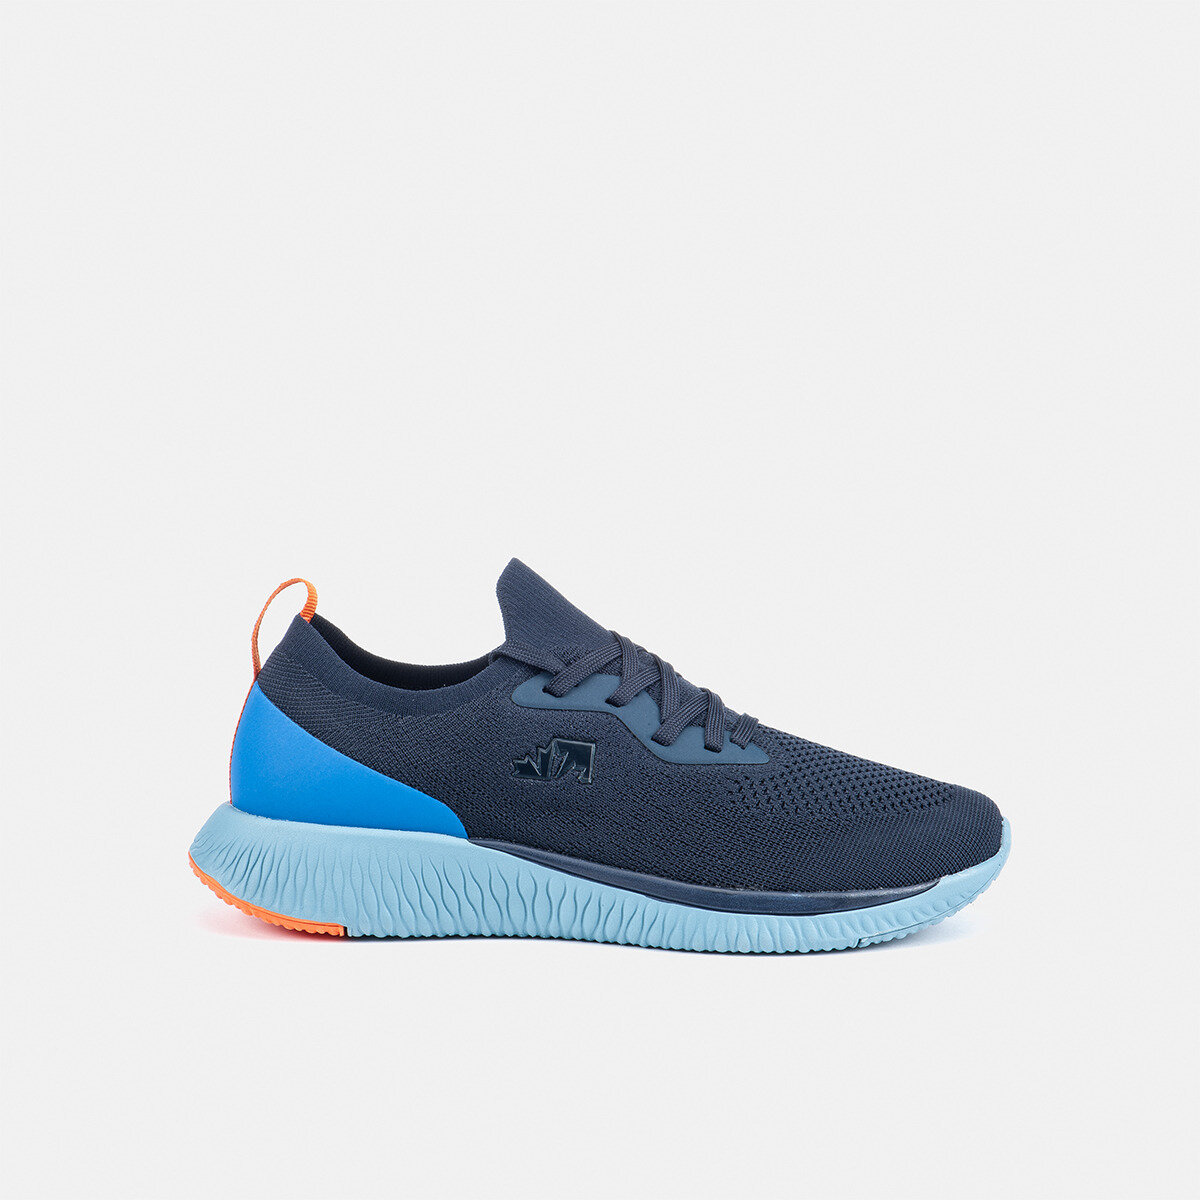 ALLEY NAVY BLUE Man Running shoes